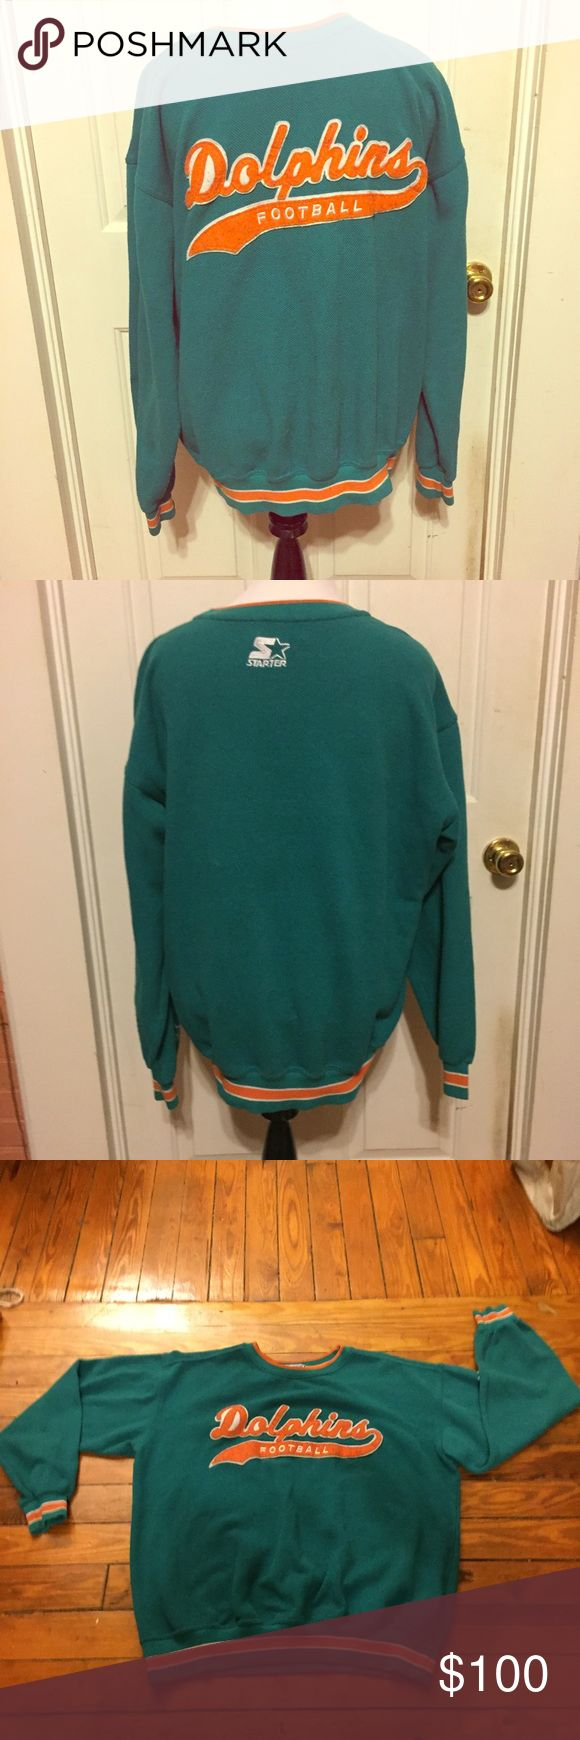 RARE Vintage Starter NFL Miami Dolphins Sweater XL RARE Vintage Starter NFL Miami Dolphins Men's Sweater size XL. Turquoise/Teal, Orange, and white. Could work for a lady too. Made in 80's most likely. Super soft and comfy. In great vintage condition. Get it before it's gone! Comment if you need measurements. Bundle and Save $$ Starter Sweaters Crewneck